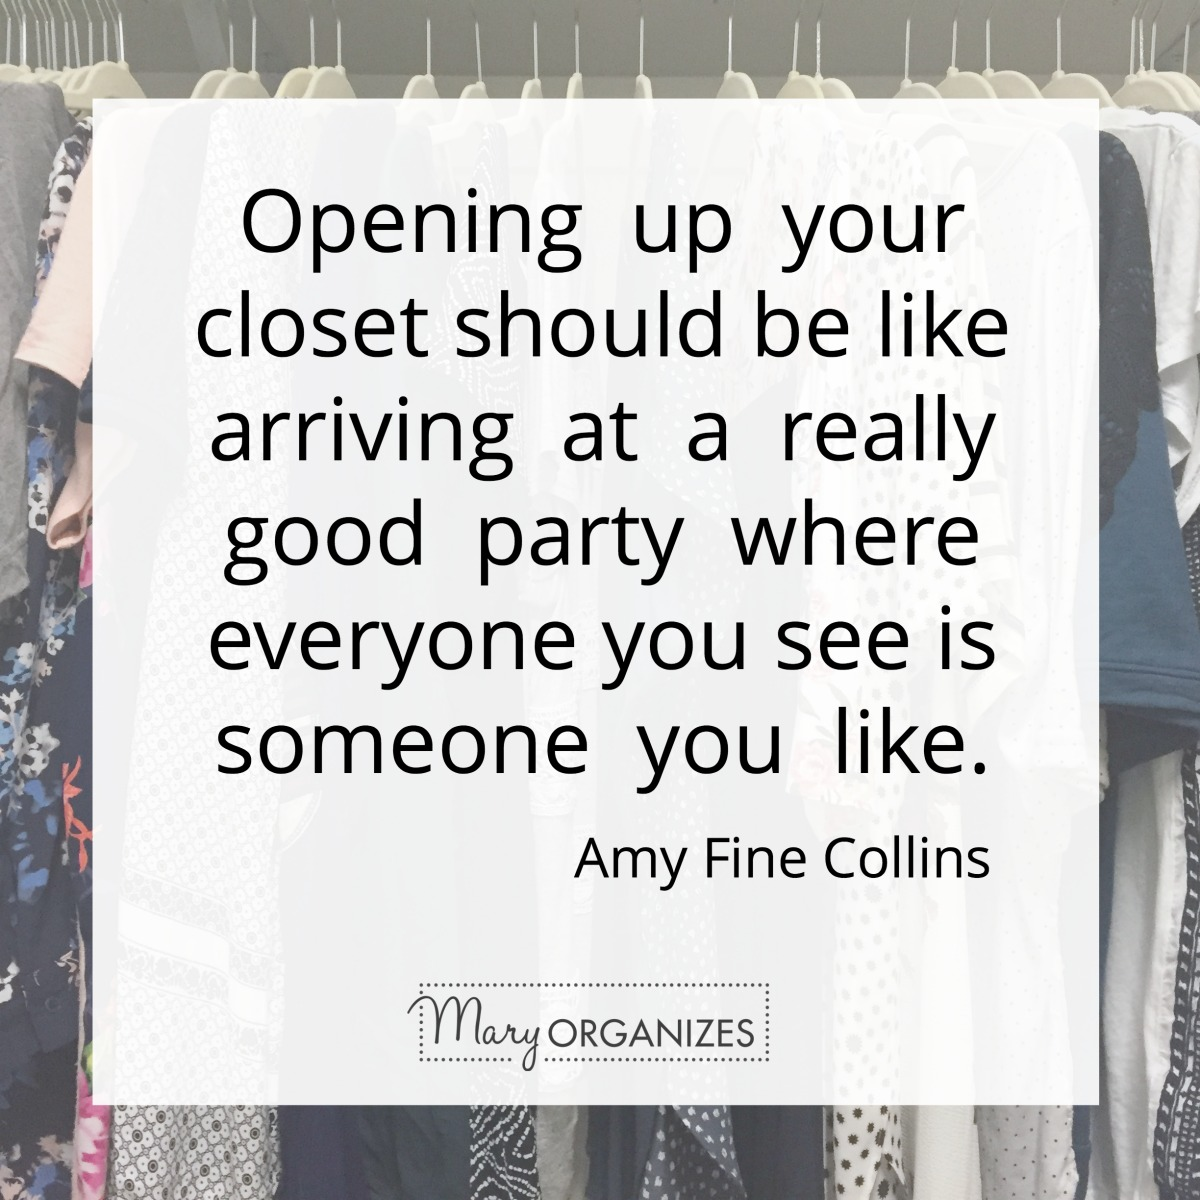 Opening up your closet should be like arriving at a really good party - Amy Fine Collins - Mary ORGANIZES